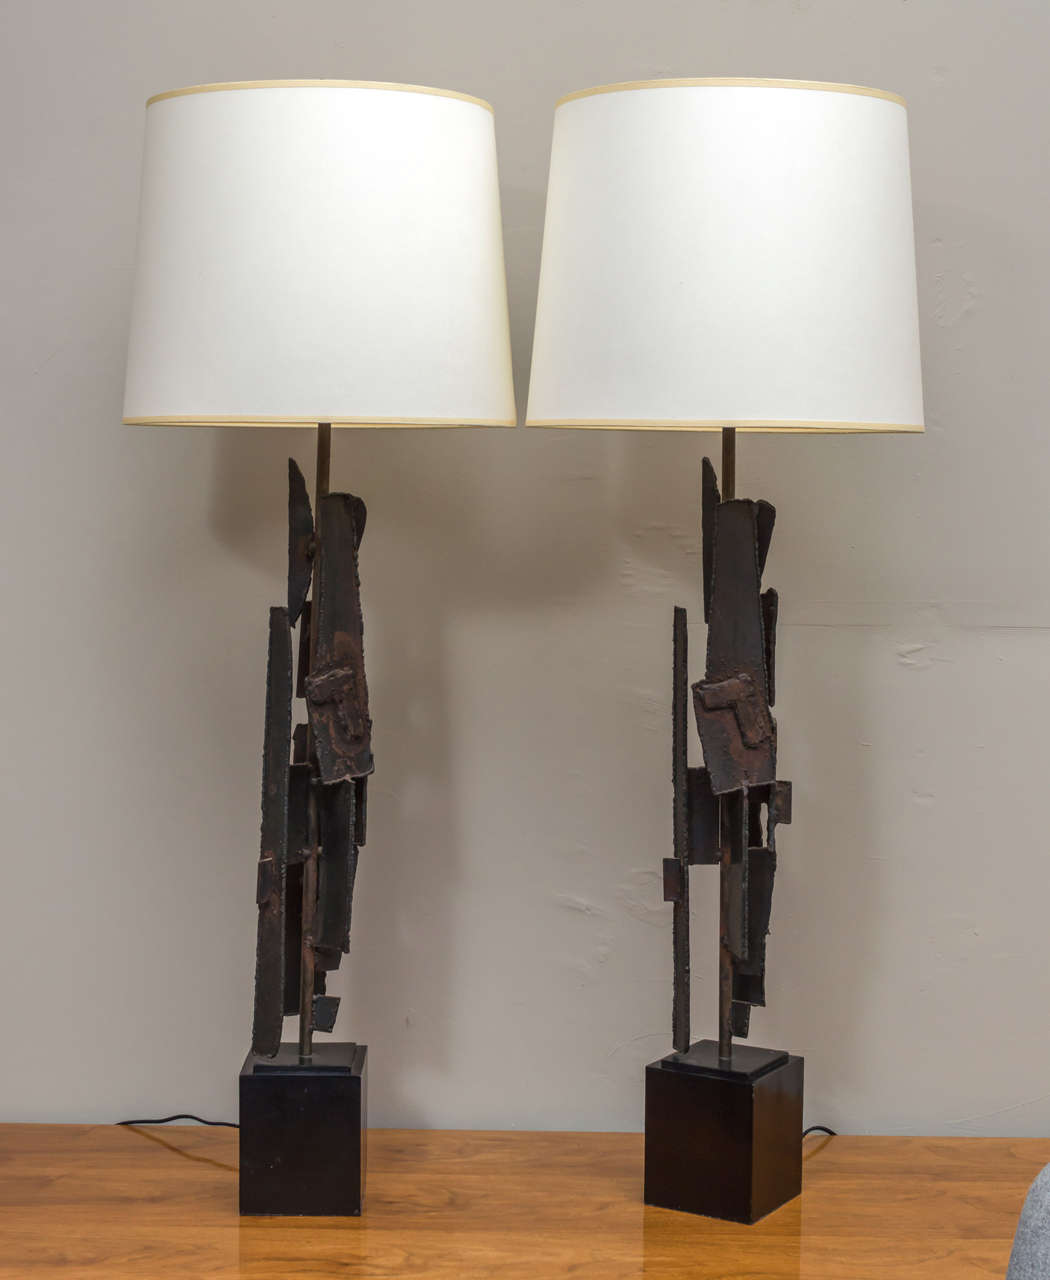 Original pair of Brutalist lamps designed by Harry Balmer for Laurel Lamp Company. Newly re-wired in excellent vintage condition.